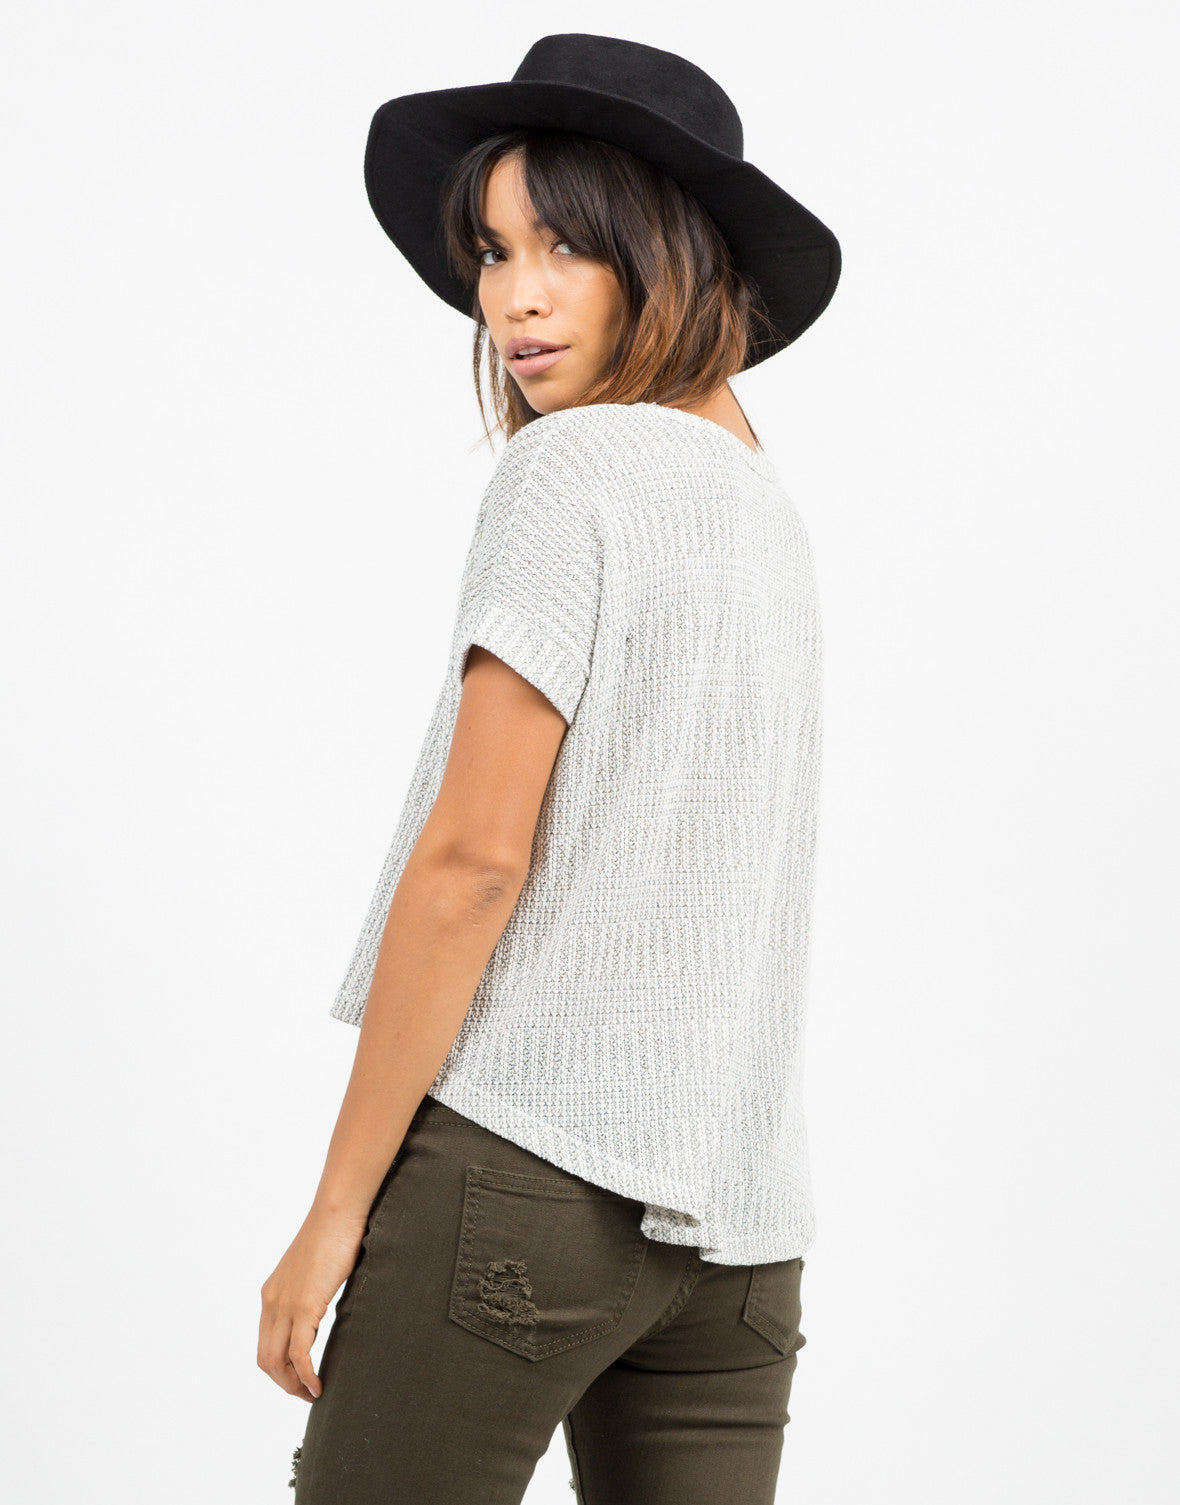 Back View of Boxy Sweater Top